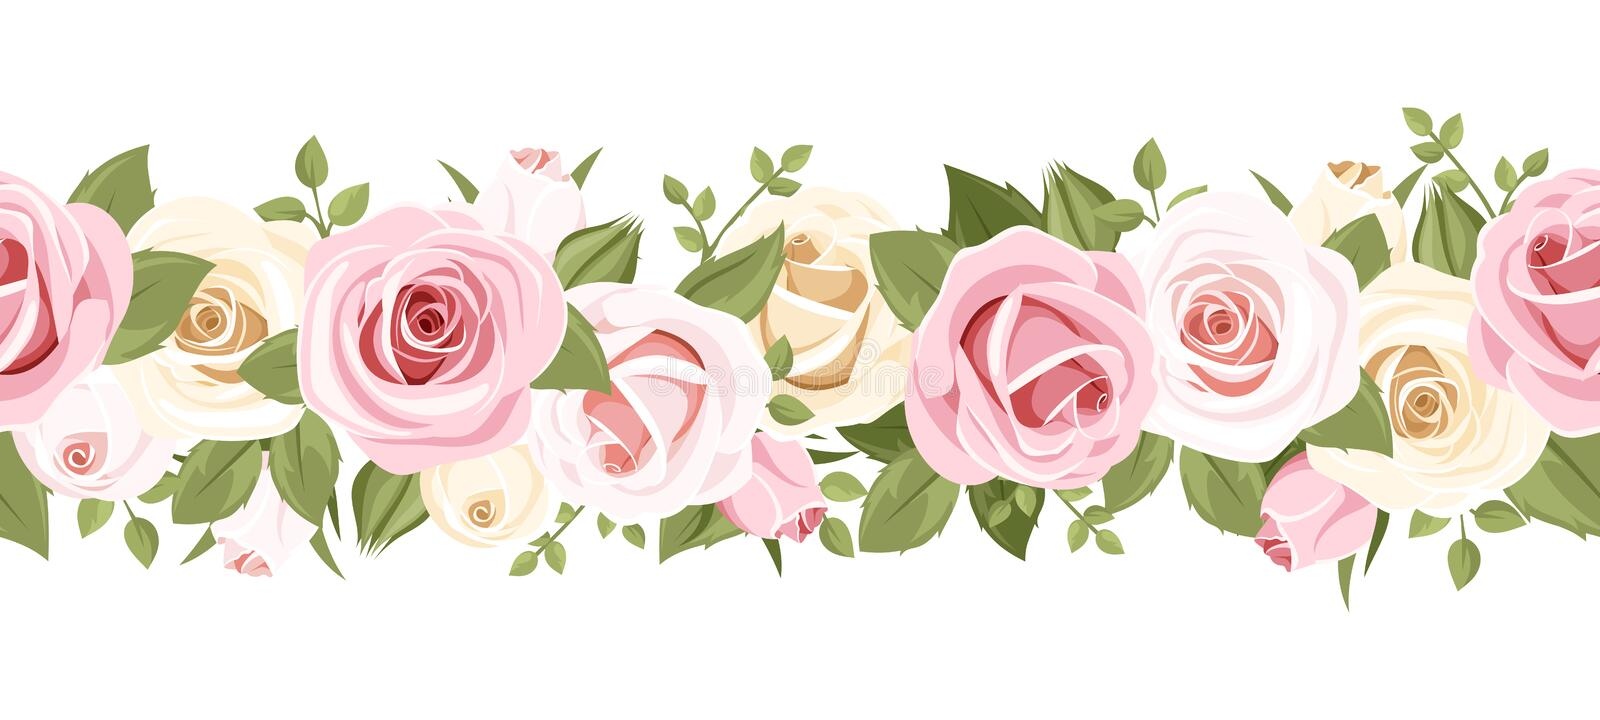 Horizontal seamless background with pink roses. Vector illustration. vector illustration